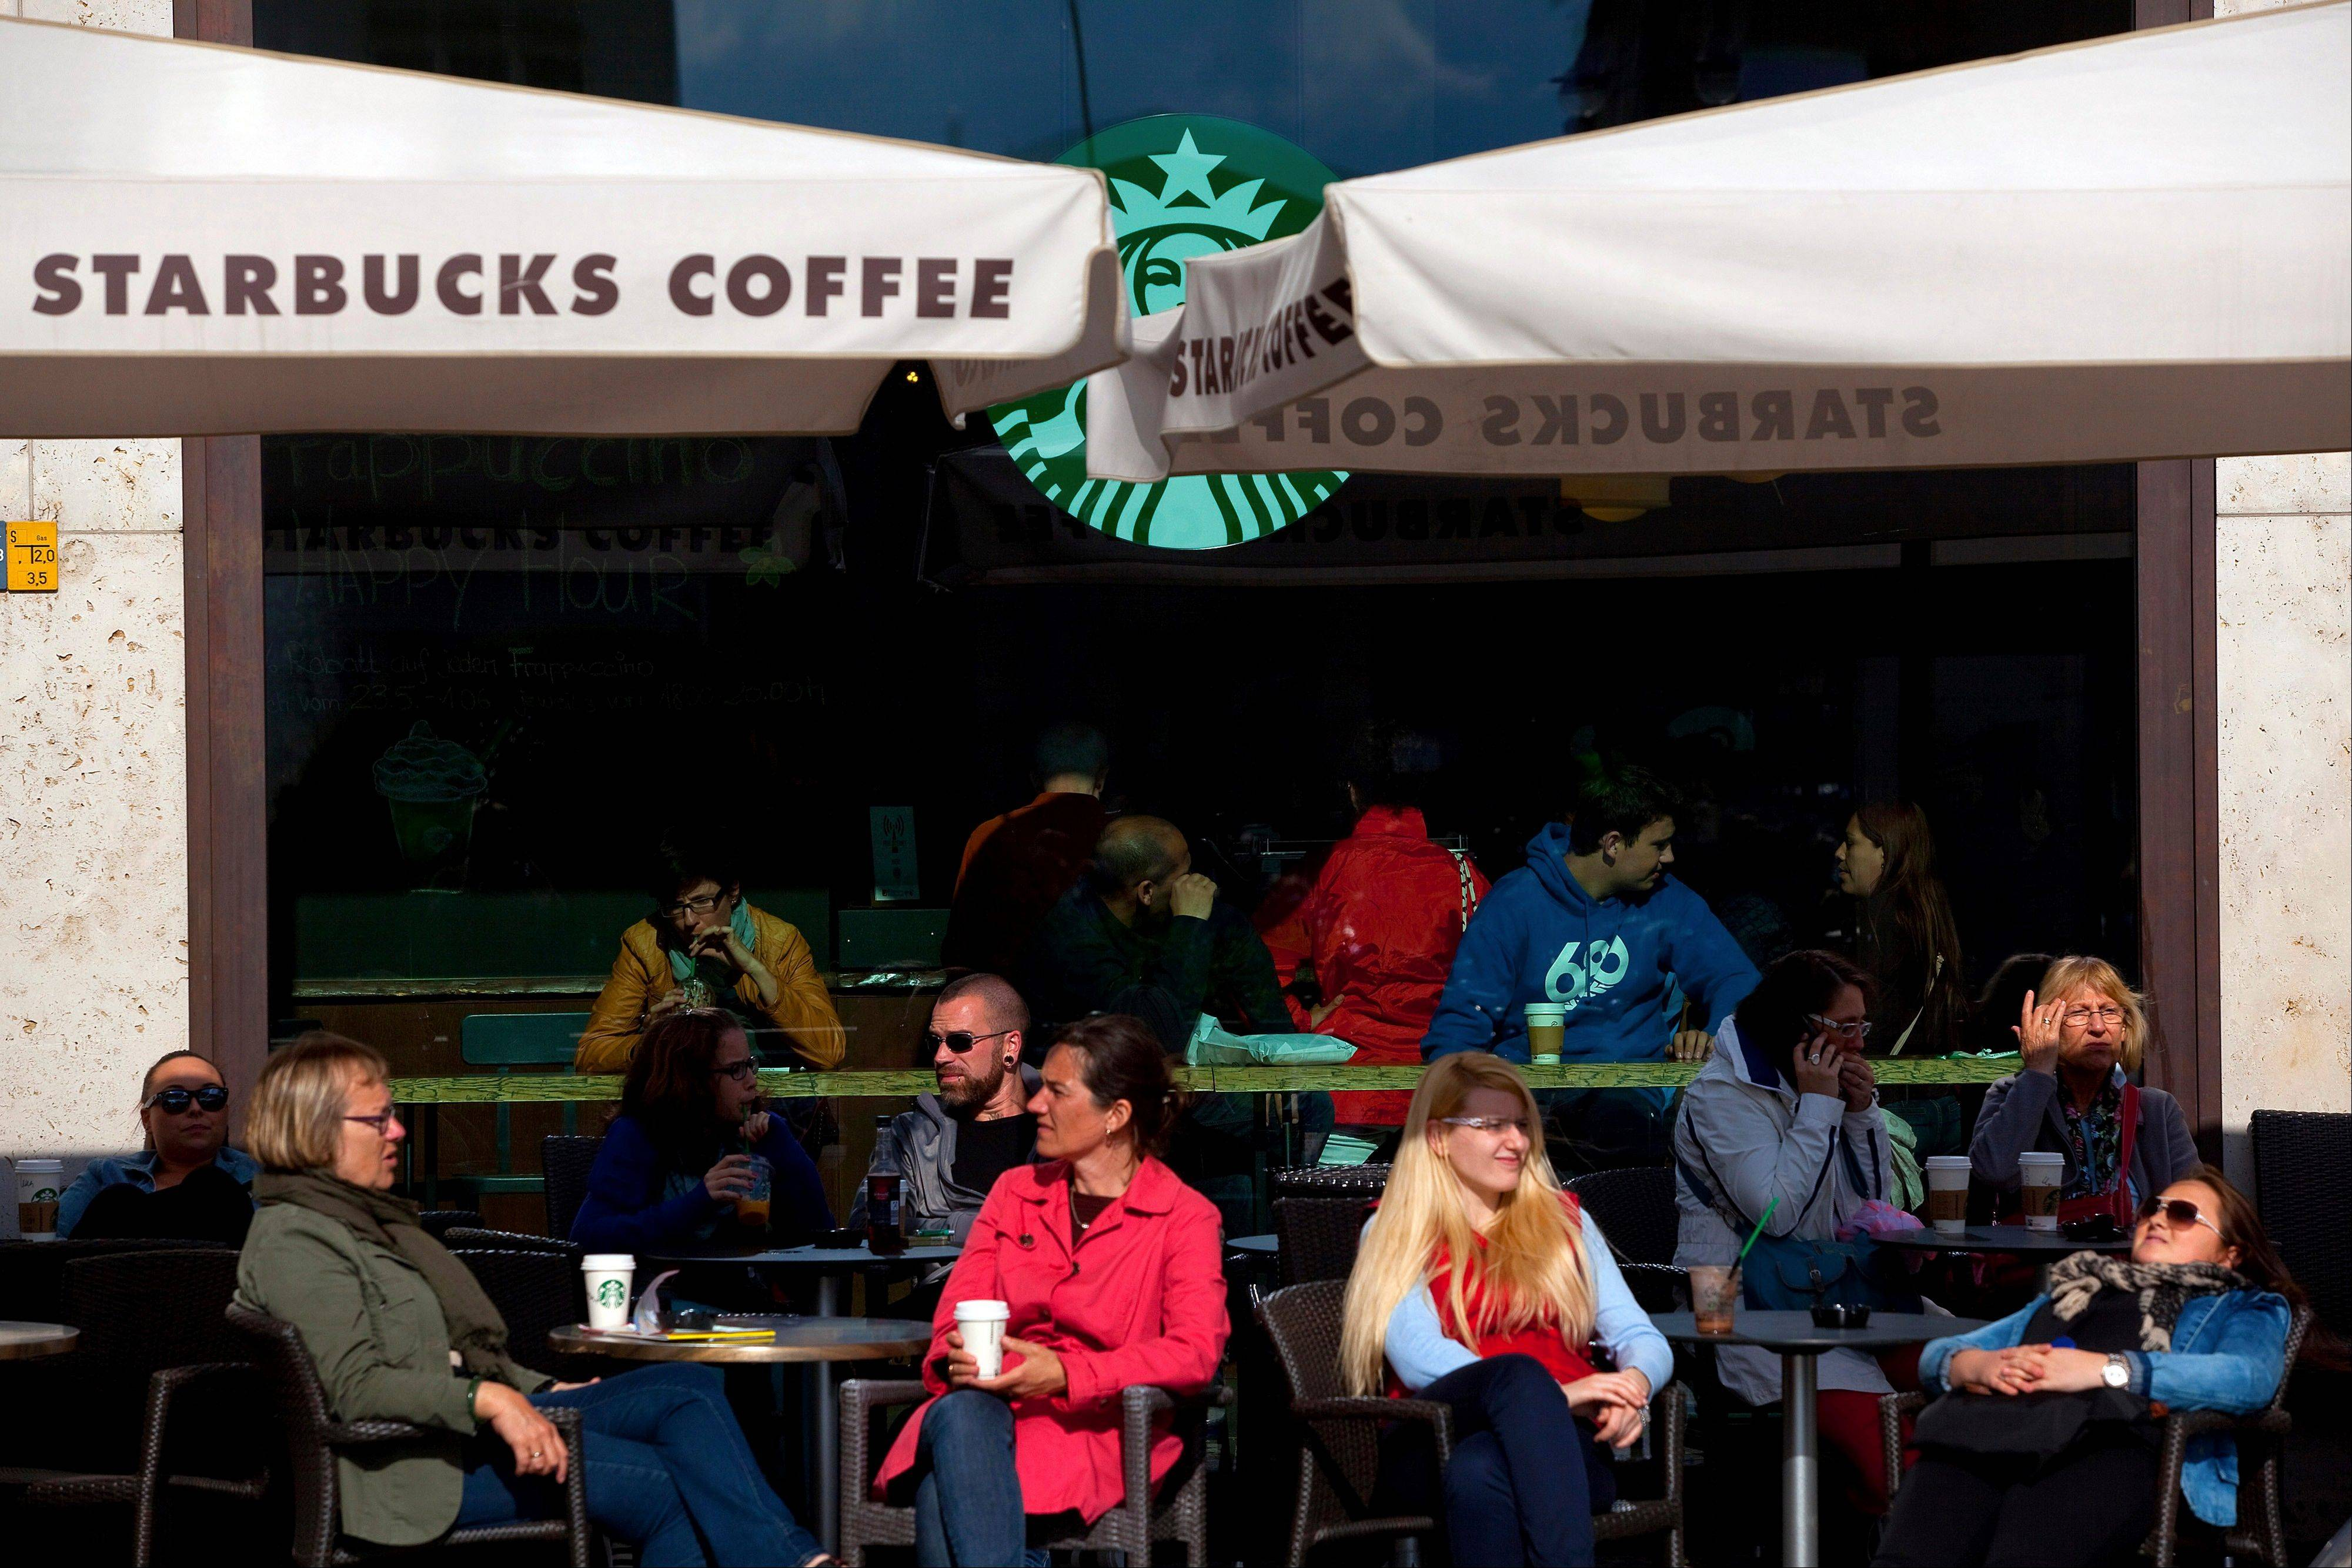 Customers sit Tuesday with beverages at tables outside a Starbucks Corp. coffee shop in Berlin, Germany.